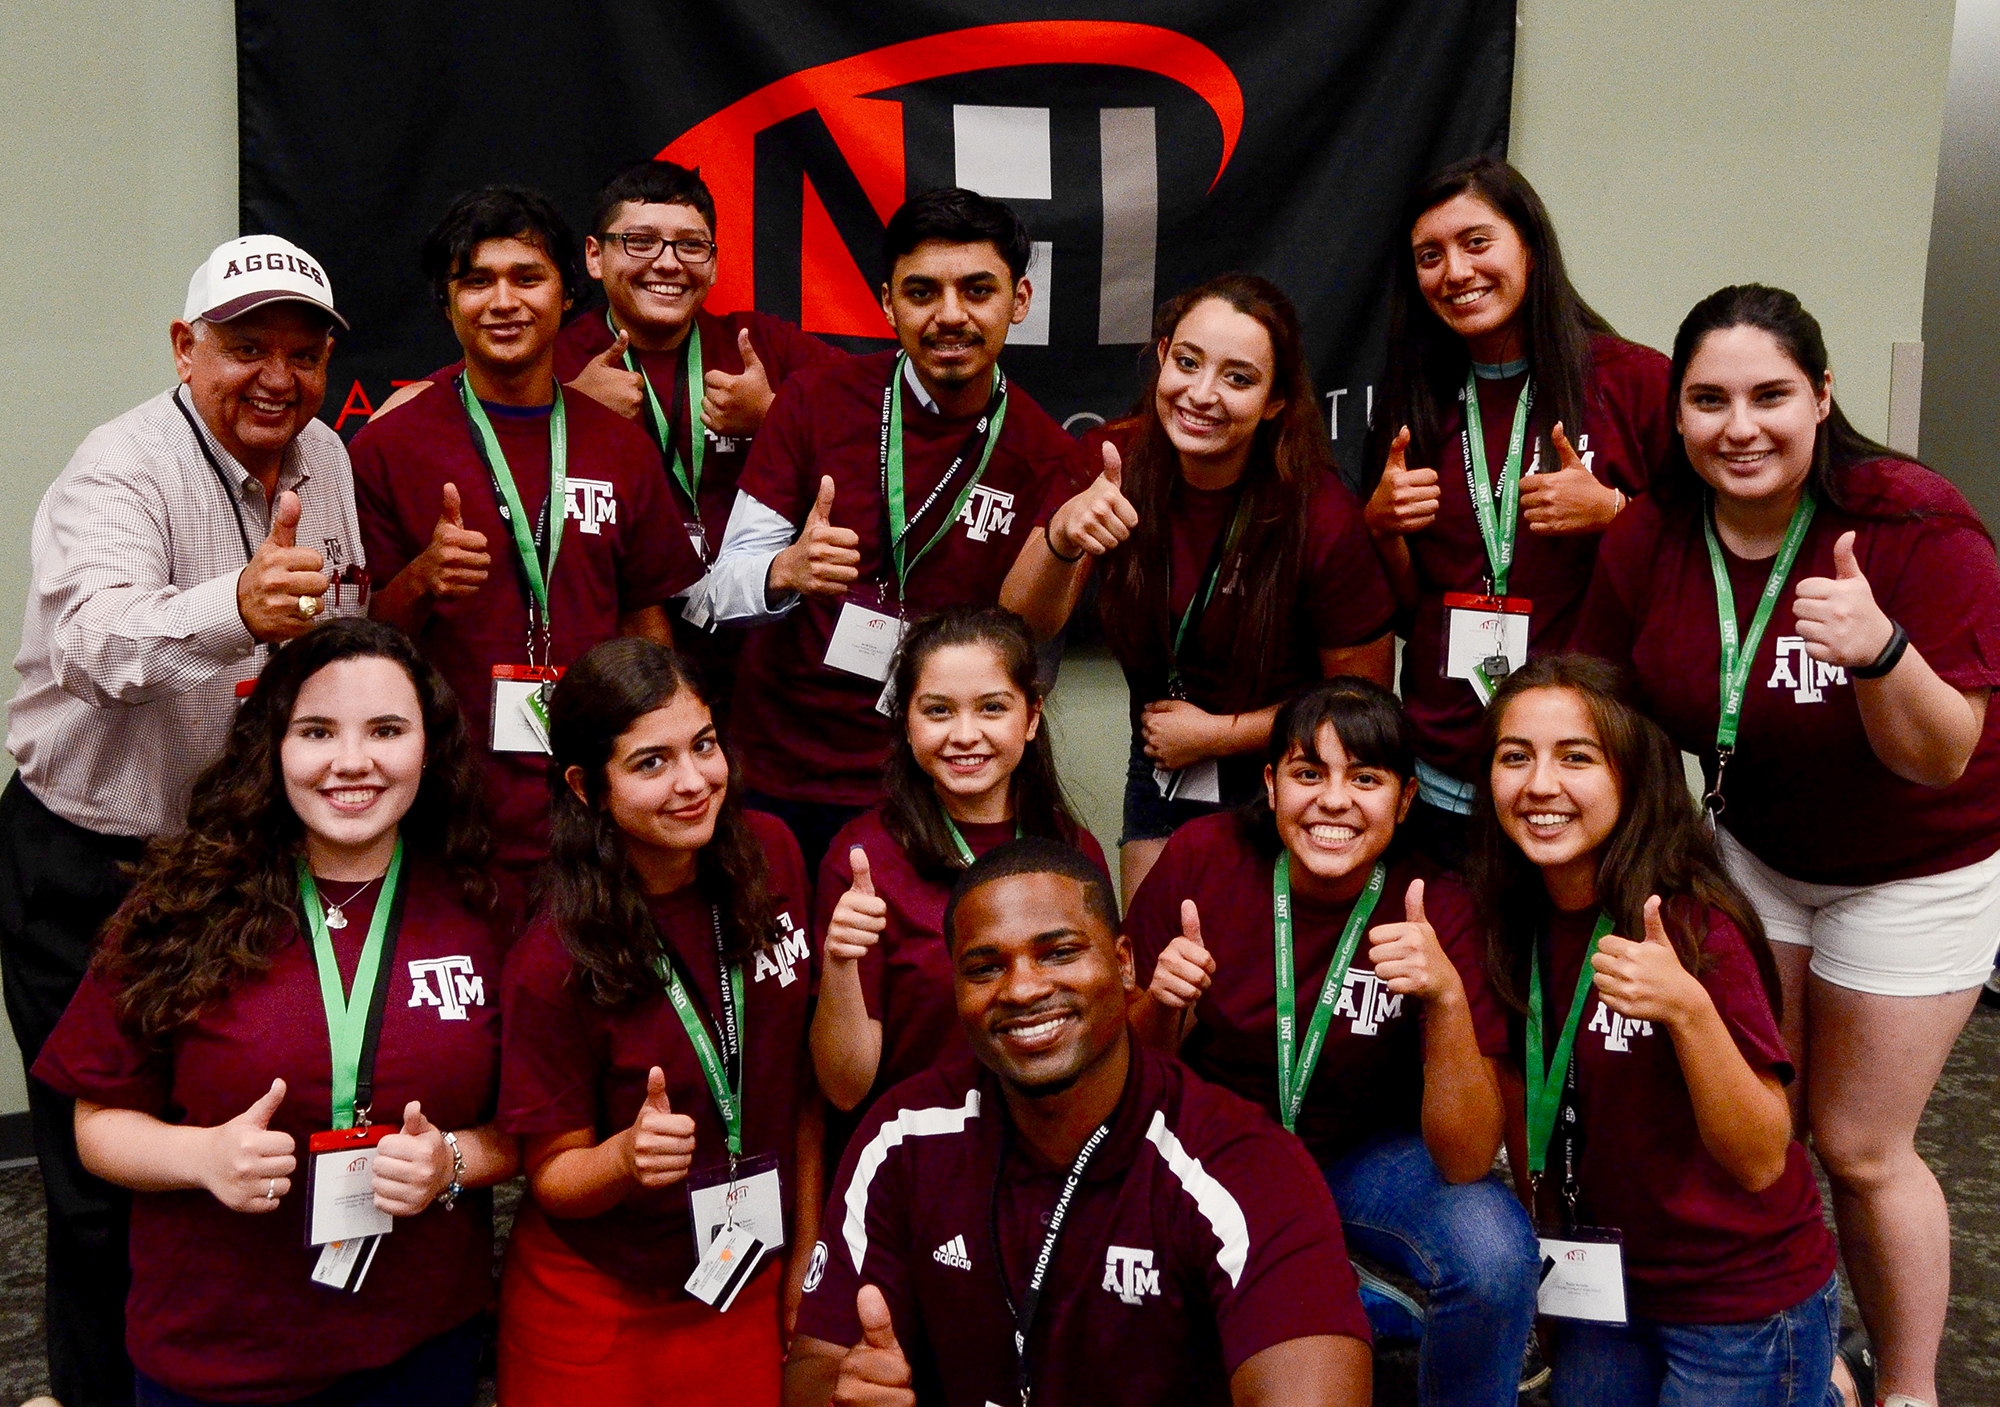 NHI students supporting Texas A&M